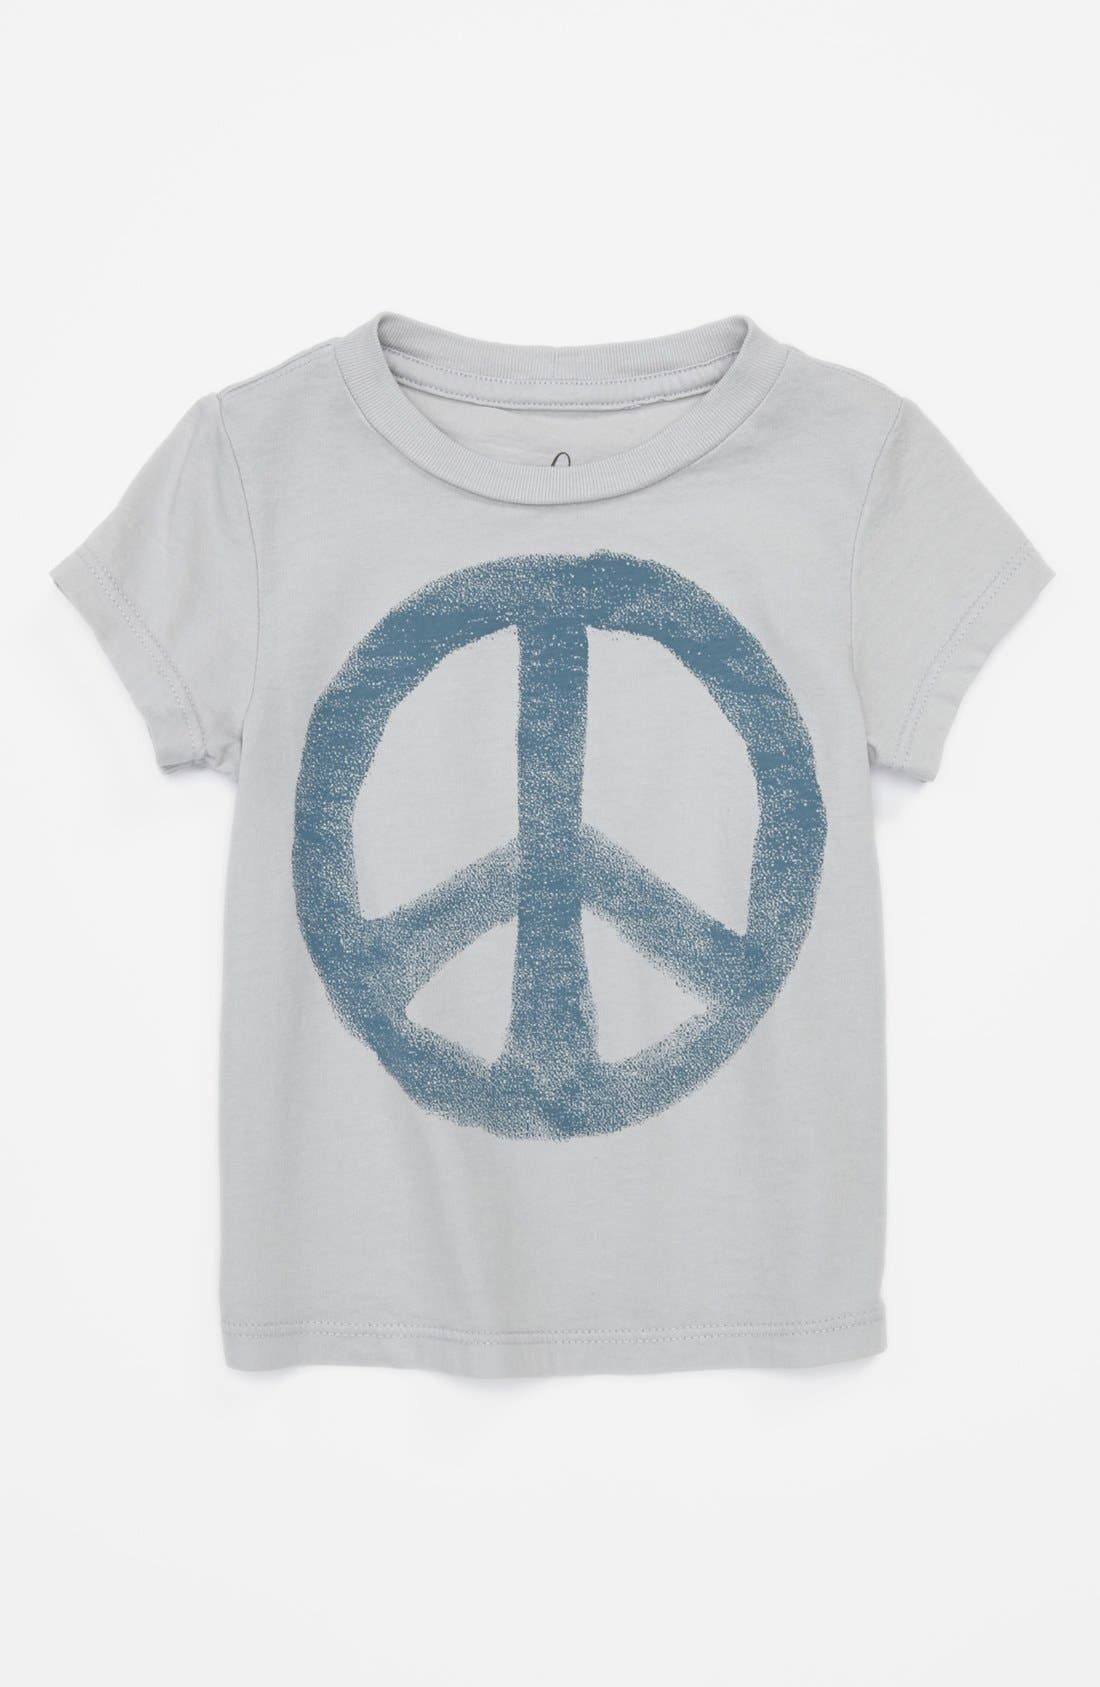 Alternate Image 1 Selected - Peek 'Peace - Little Peanut' T-Shirt (Baby Boys)